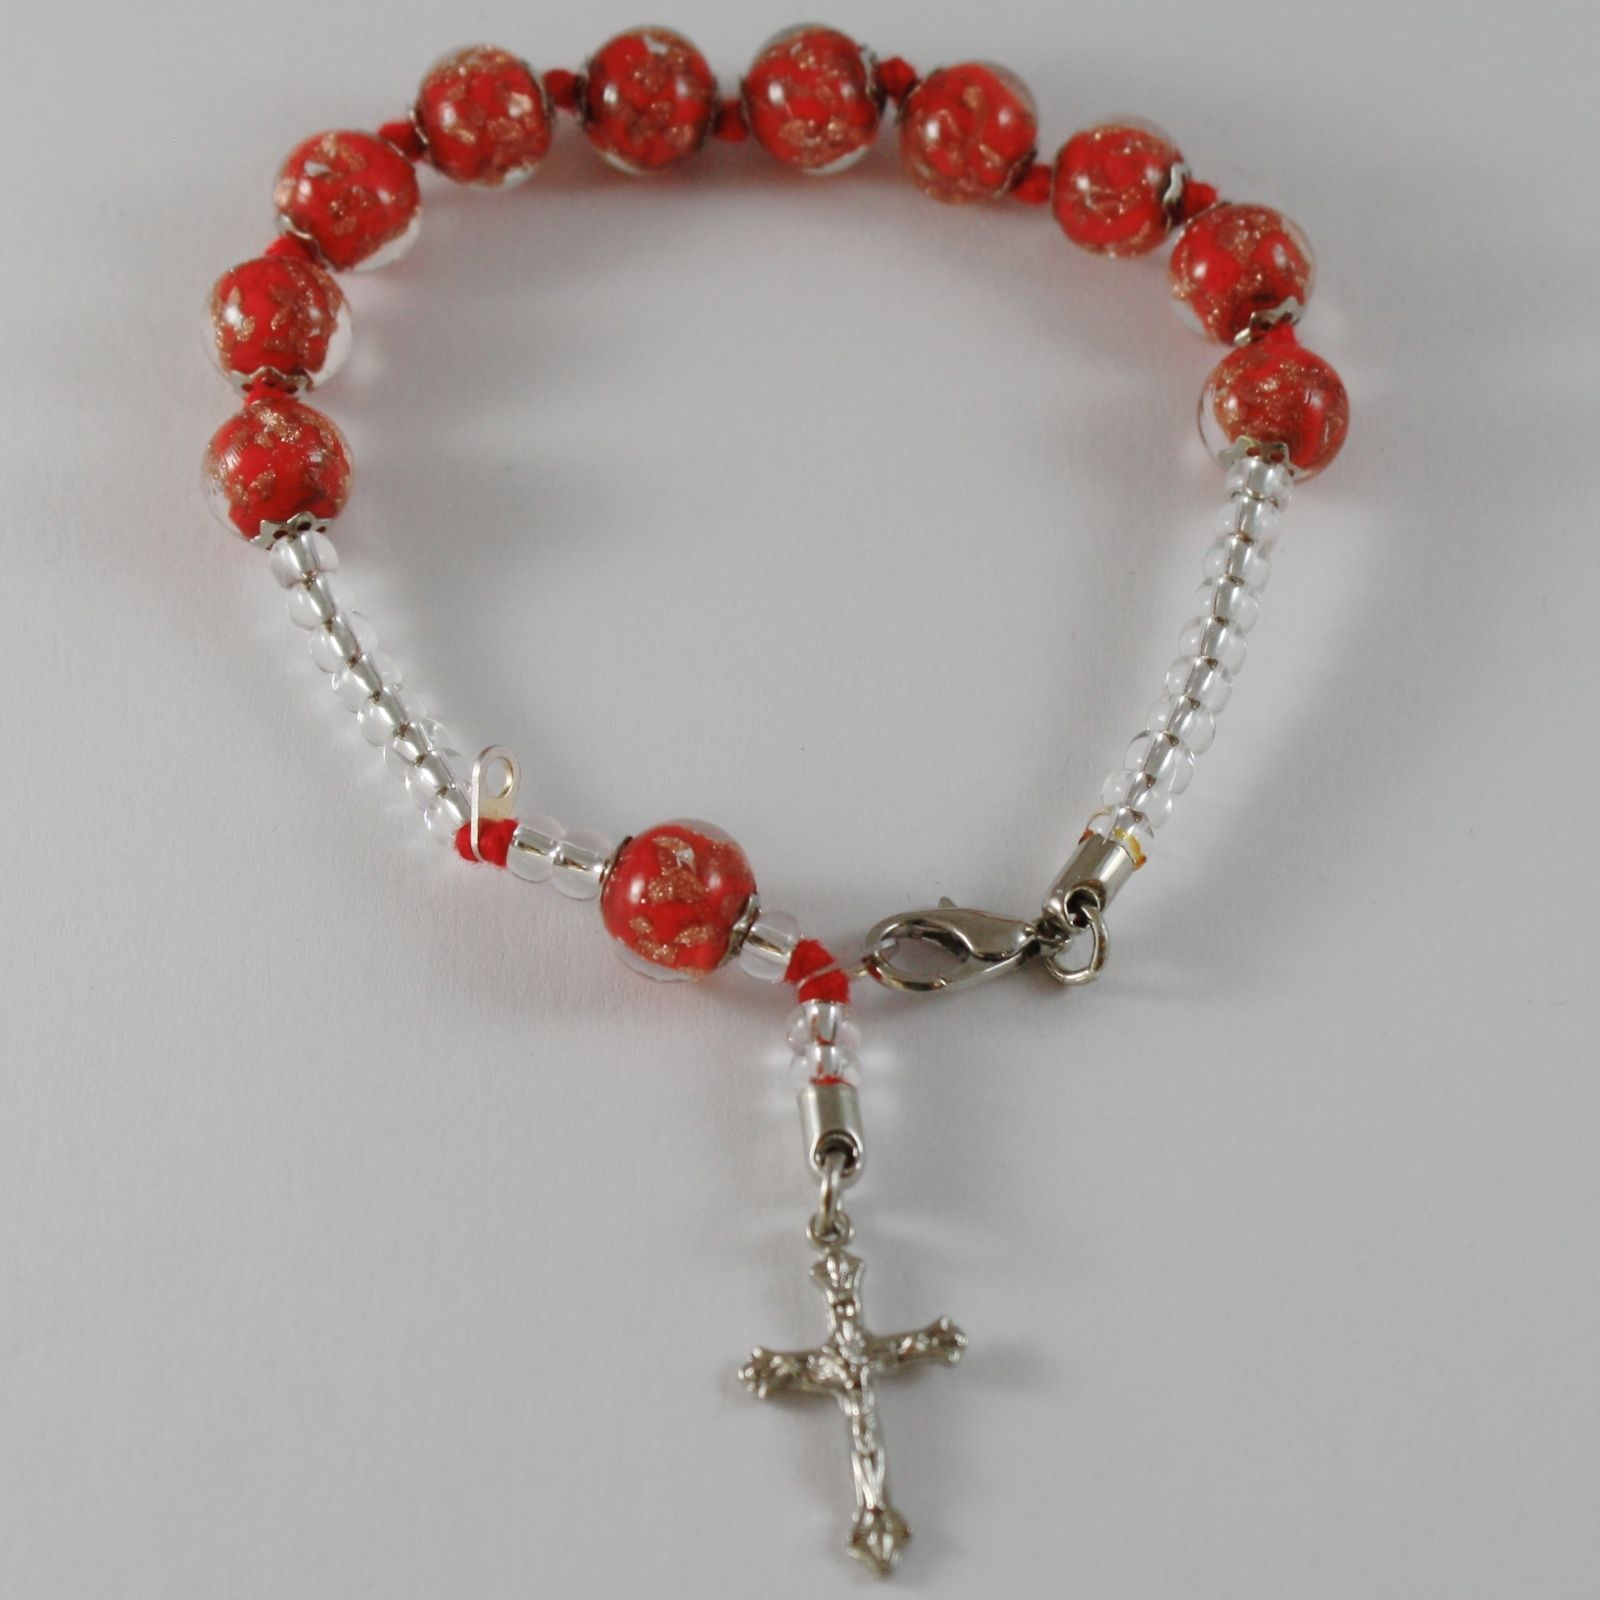 ANTICA MURRINA VENEZIA ROSARY BRACELET WITH JESUS CROSS RED SPHERES BALLS BALL